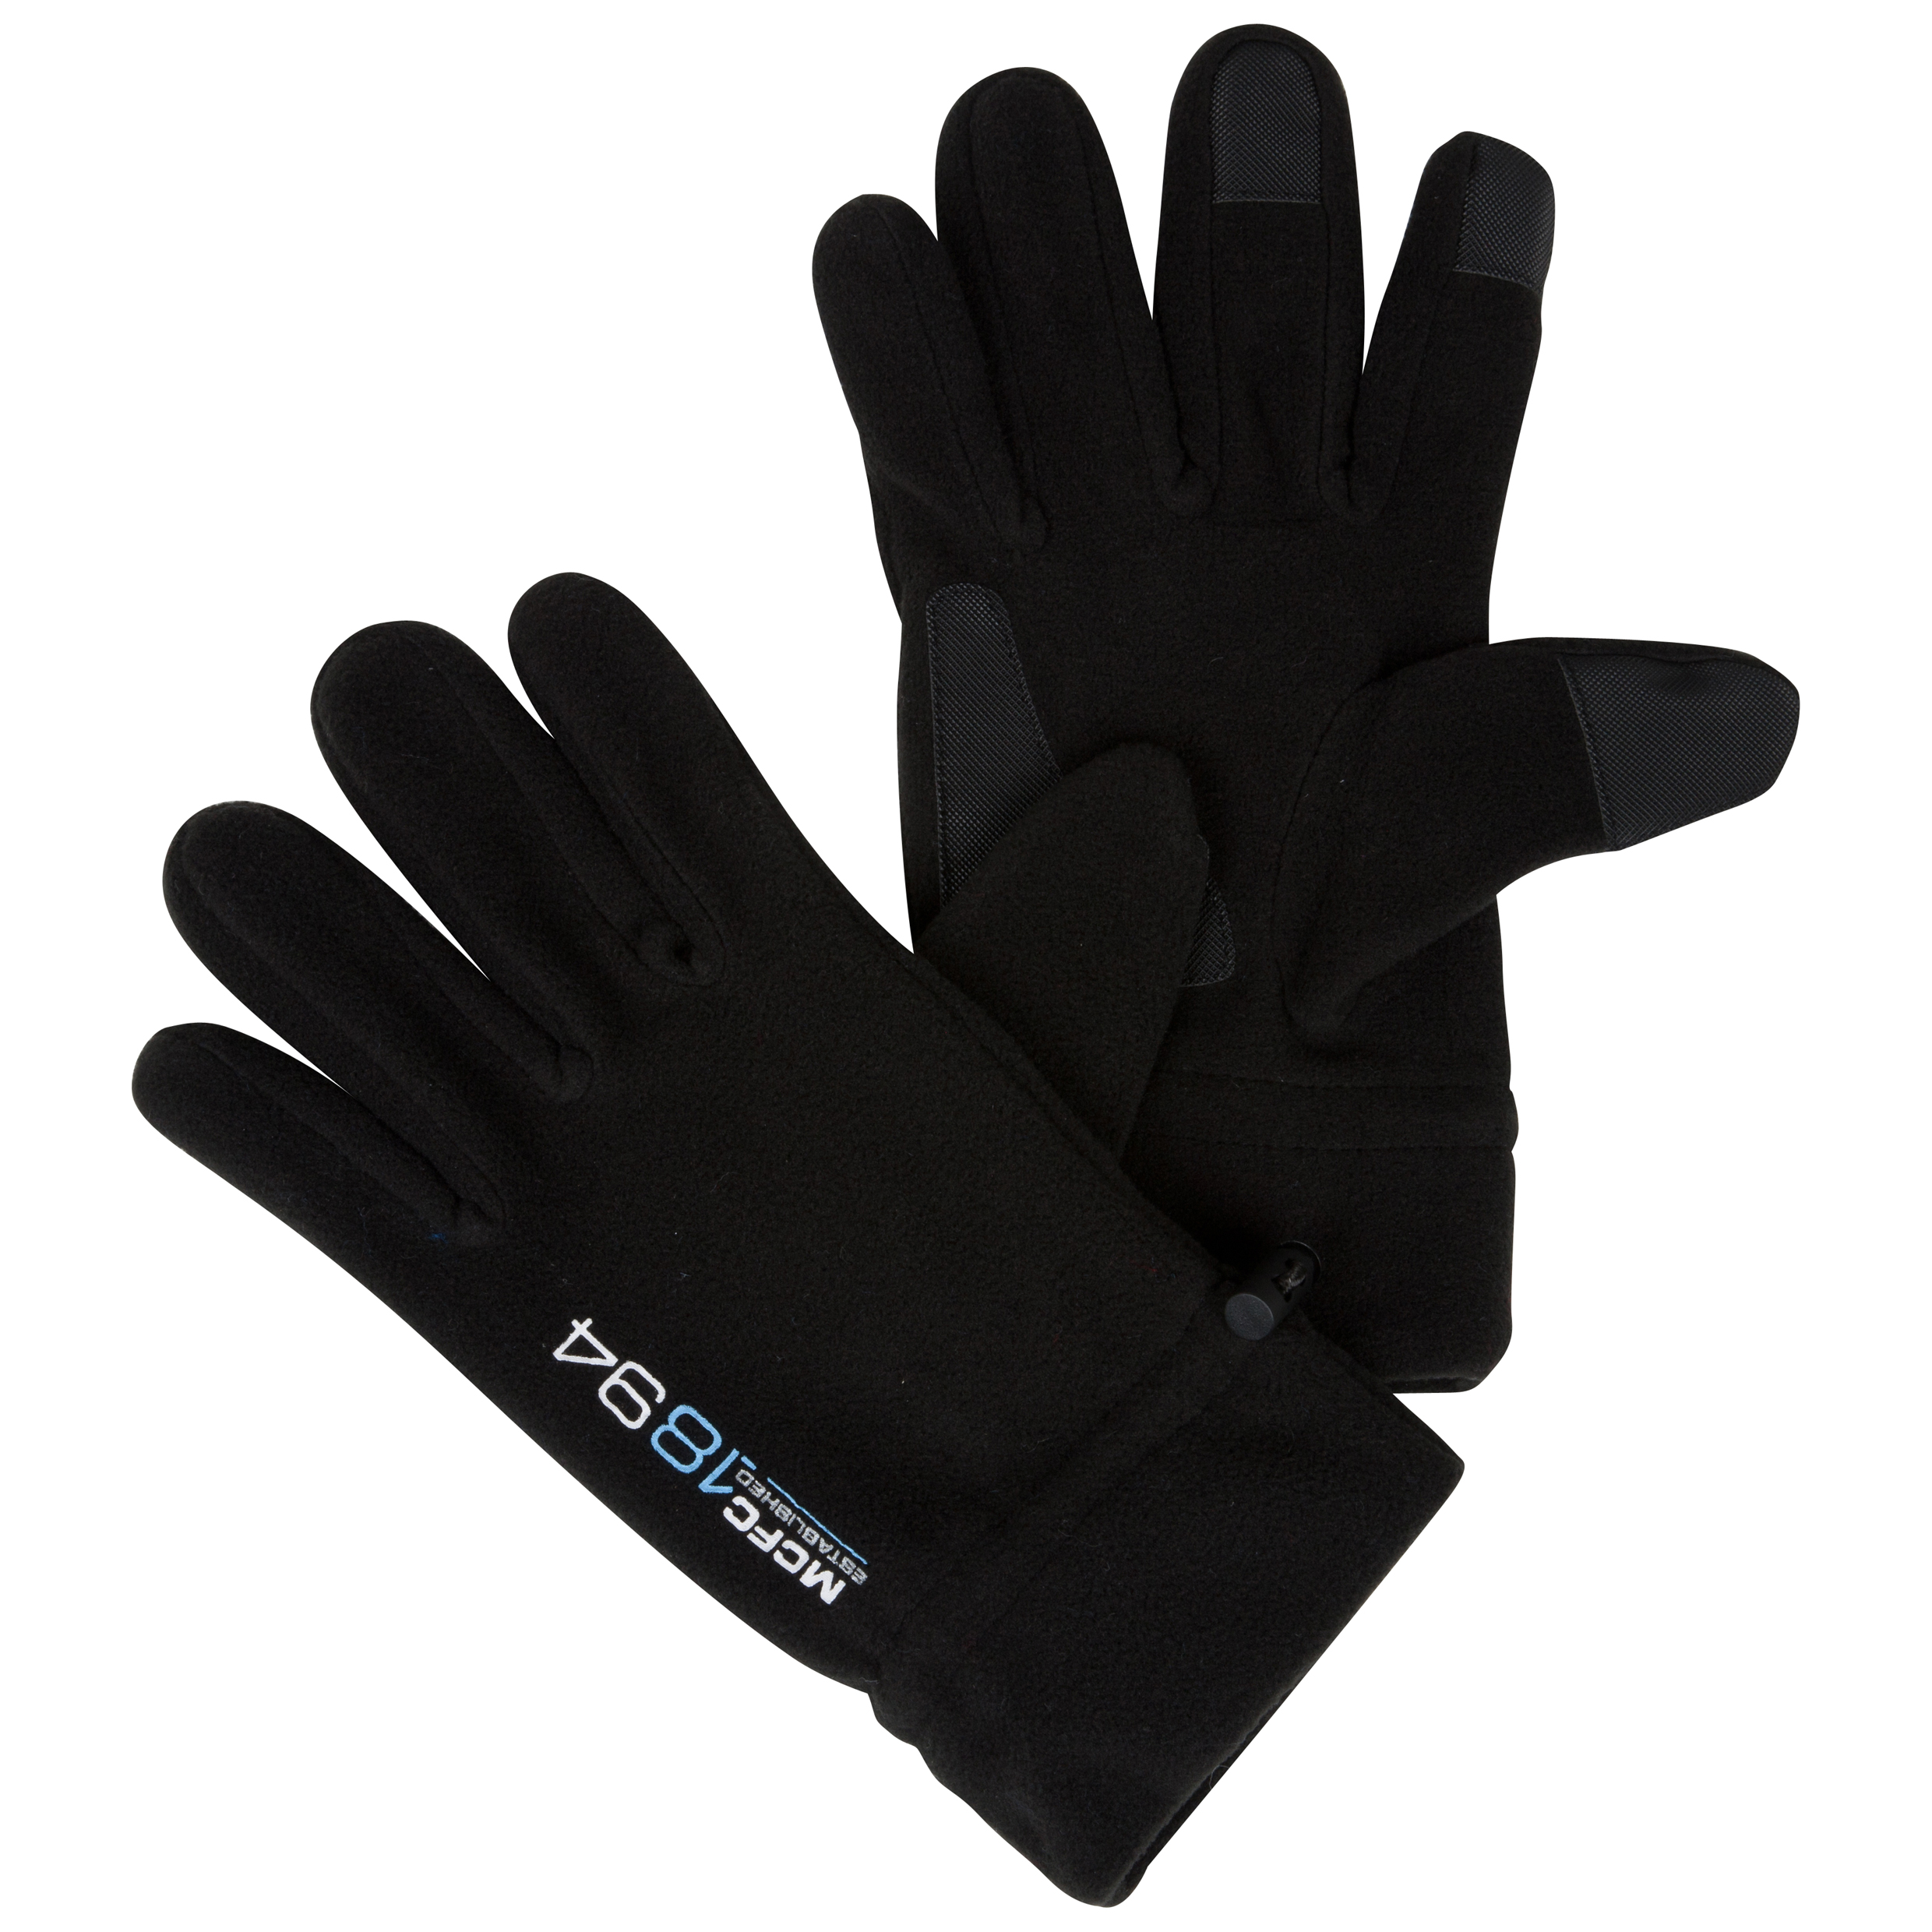 Mens, Womens and Kids gloves